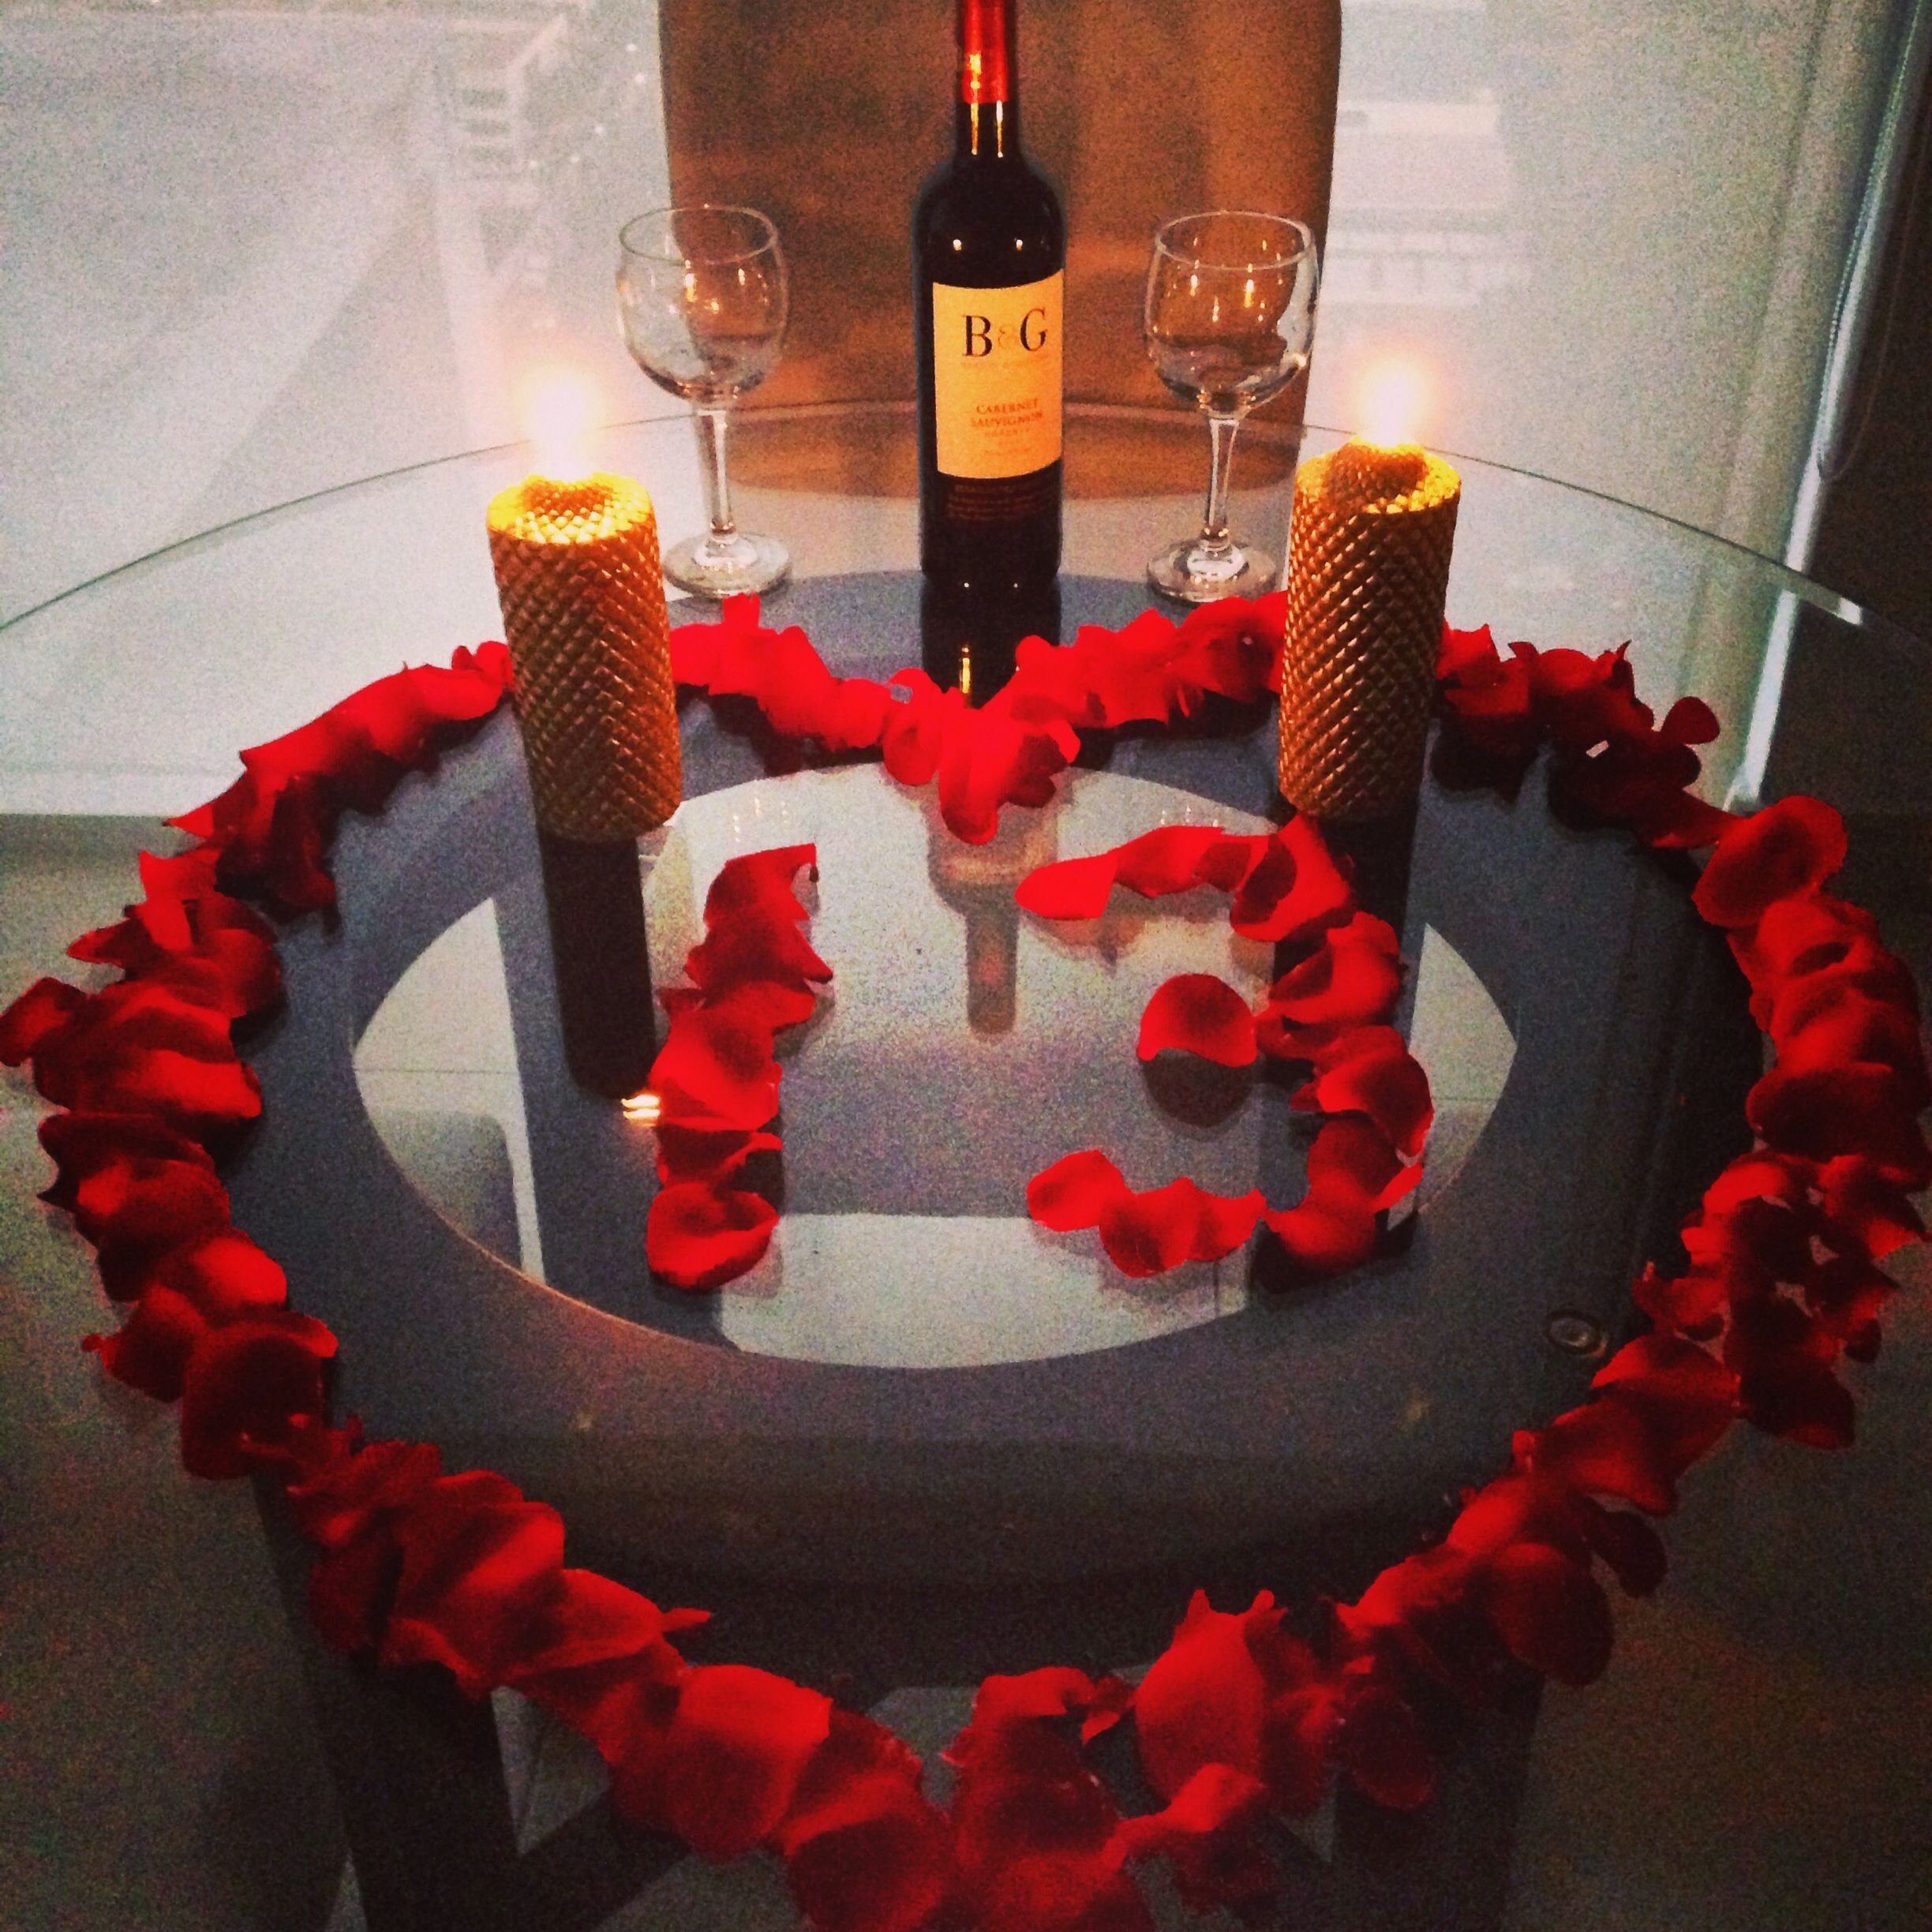 10 Stylish Ideas For A Romantic Night simple and cute romantic dinner for him anniversary